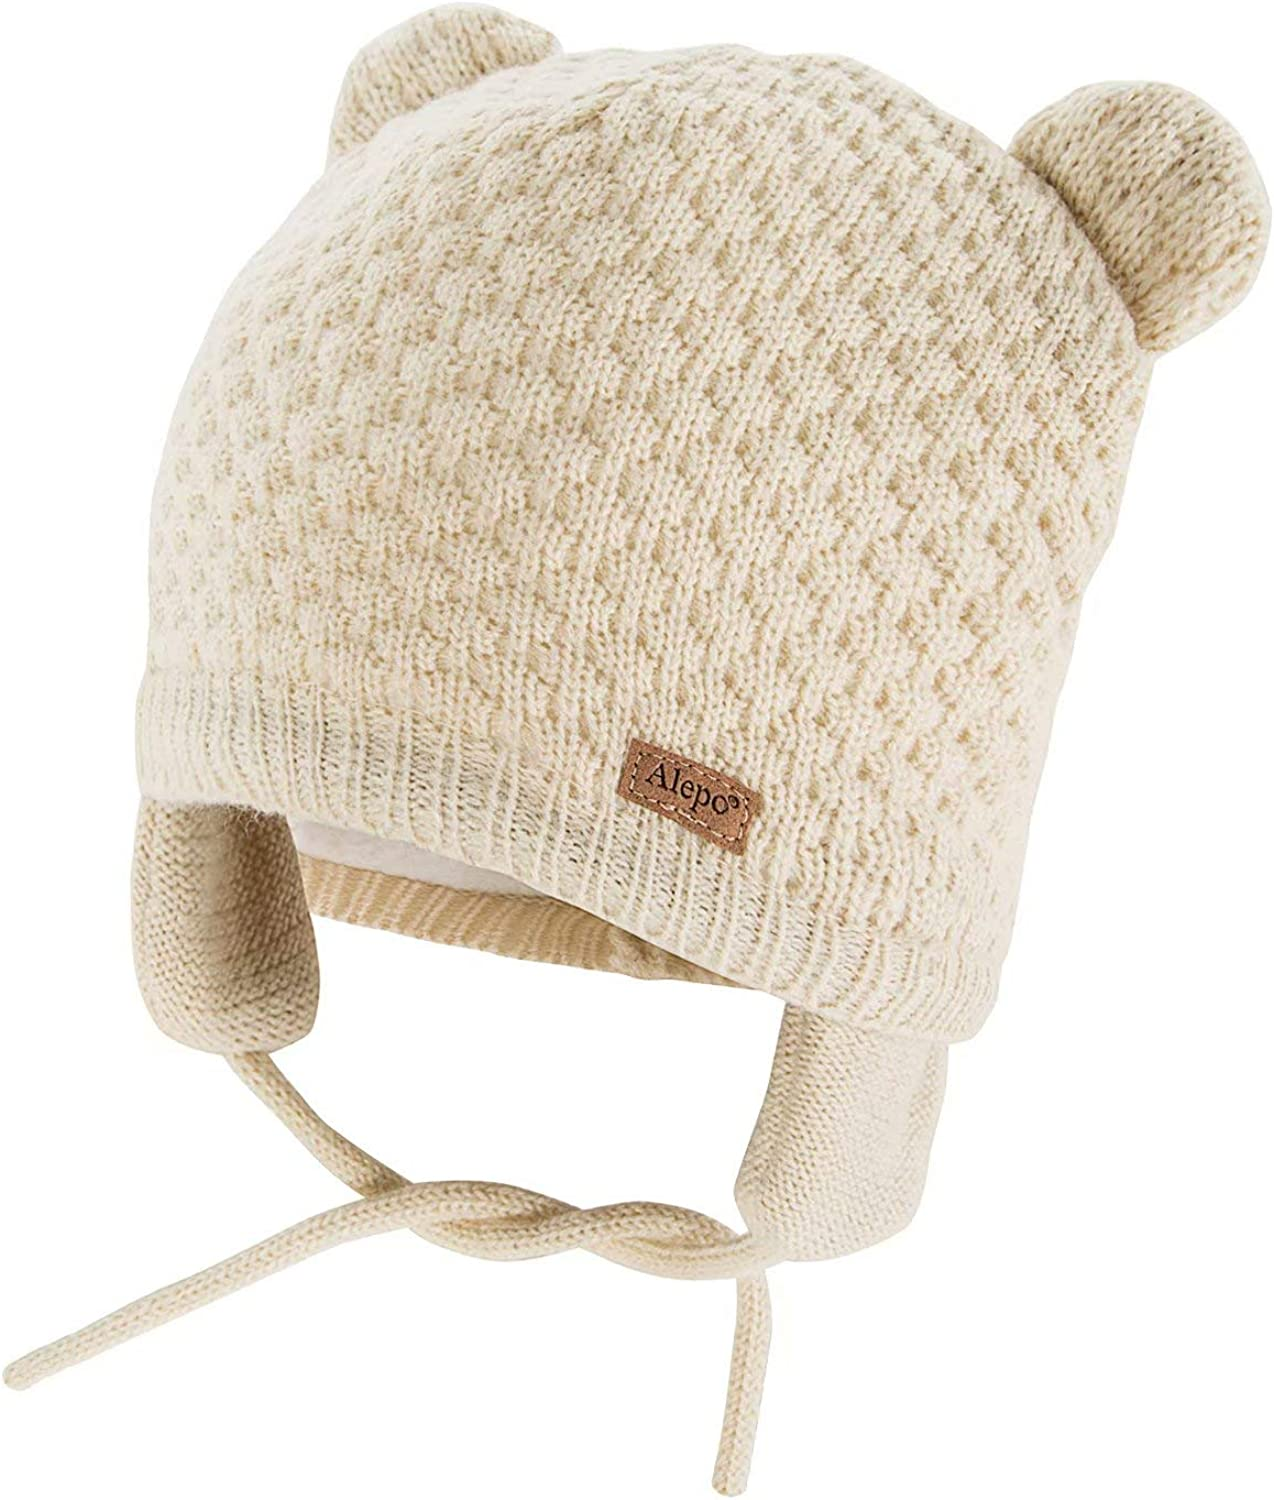 Soft Infant Baby Girl Boy Winter Hats Beanie Warm Knitted Caps With Earflaps New